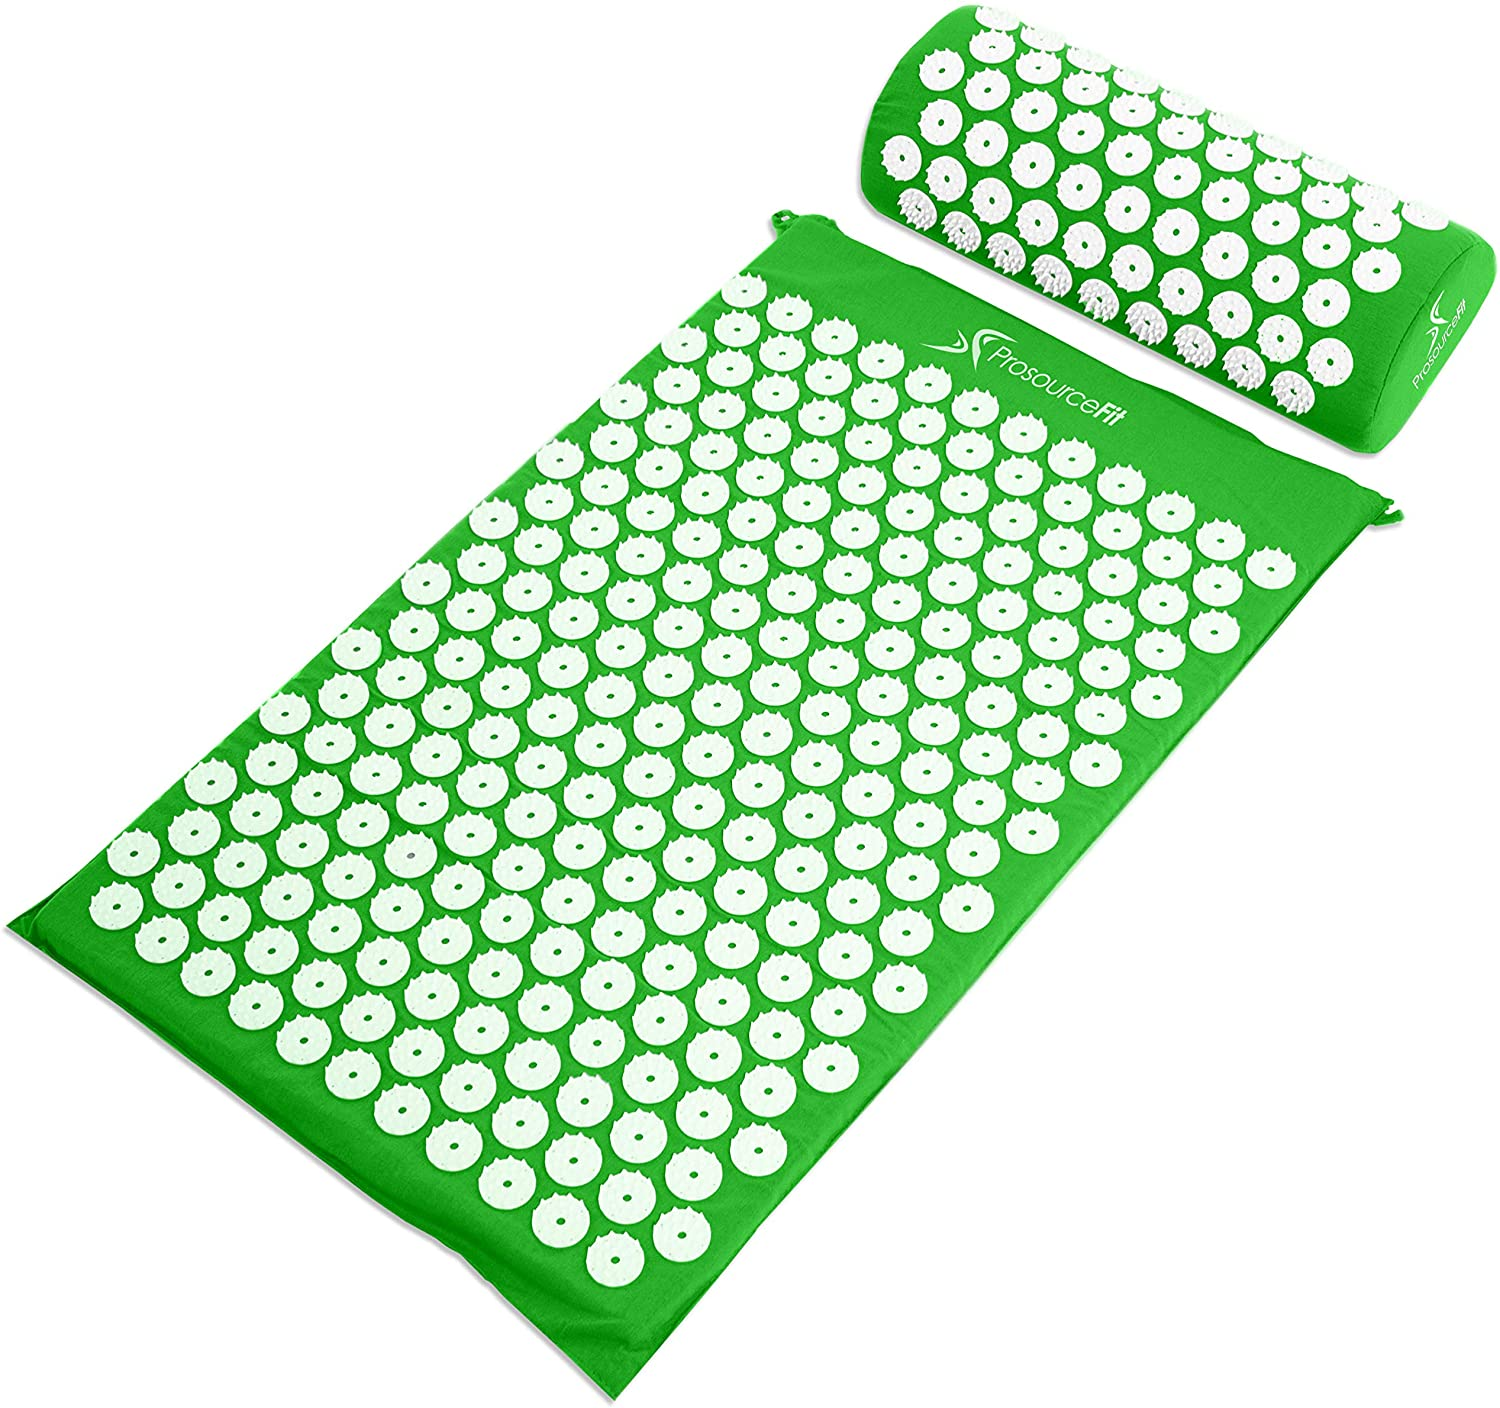 Acupressure Mat and Pillow Set for Back/Neck Pain Relief and Muscle Relaxation - Green